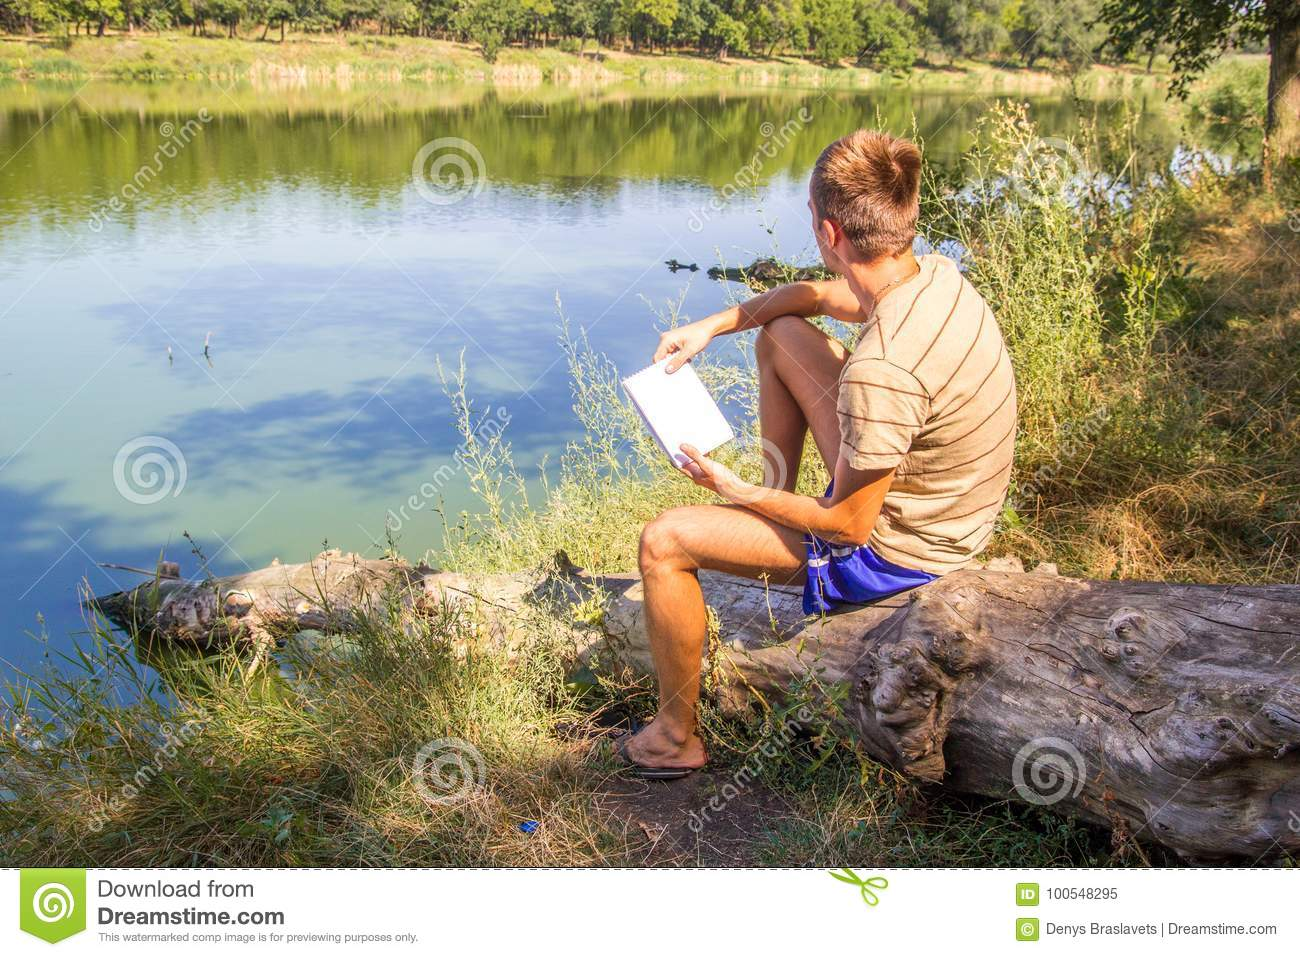 A Young Guy, With A Notebook On The Banks Of The River, Lake